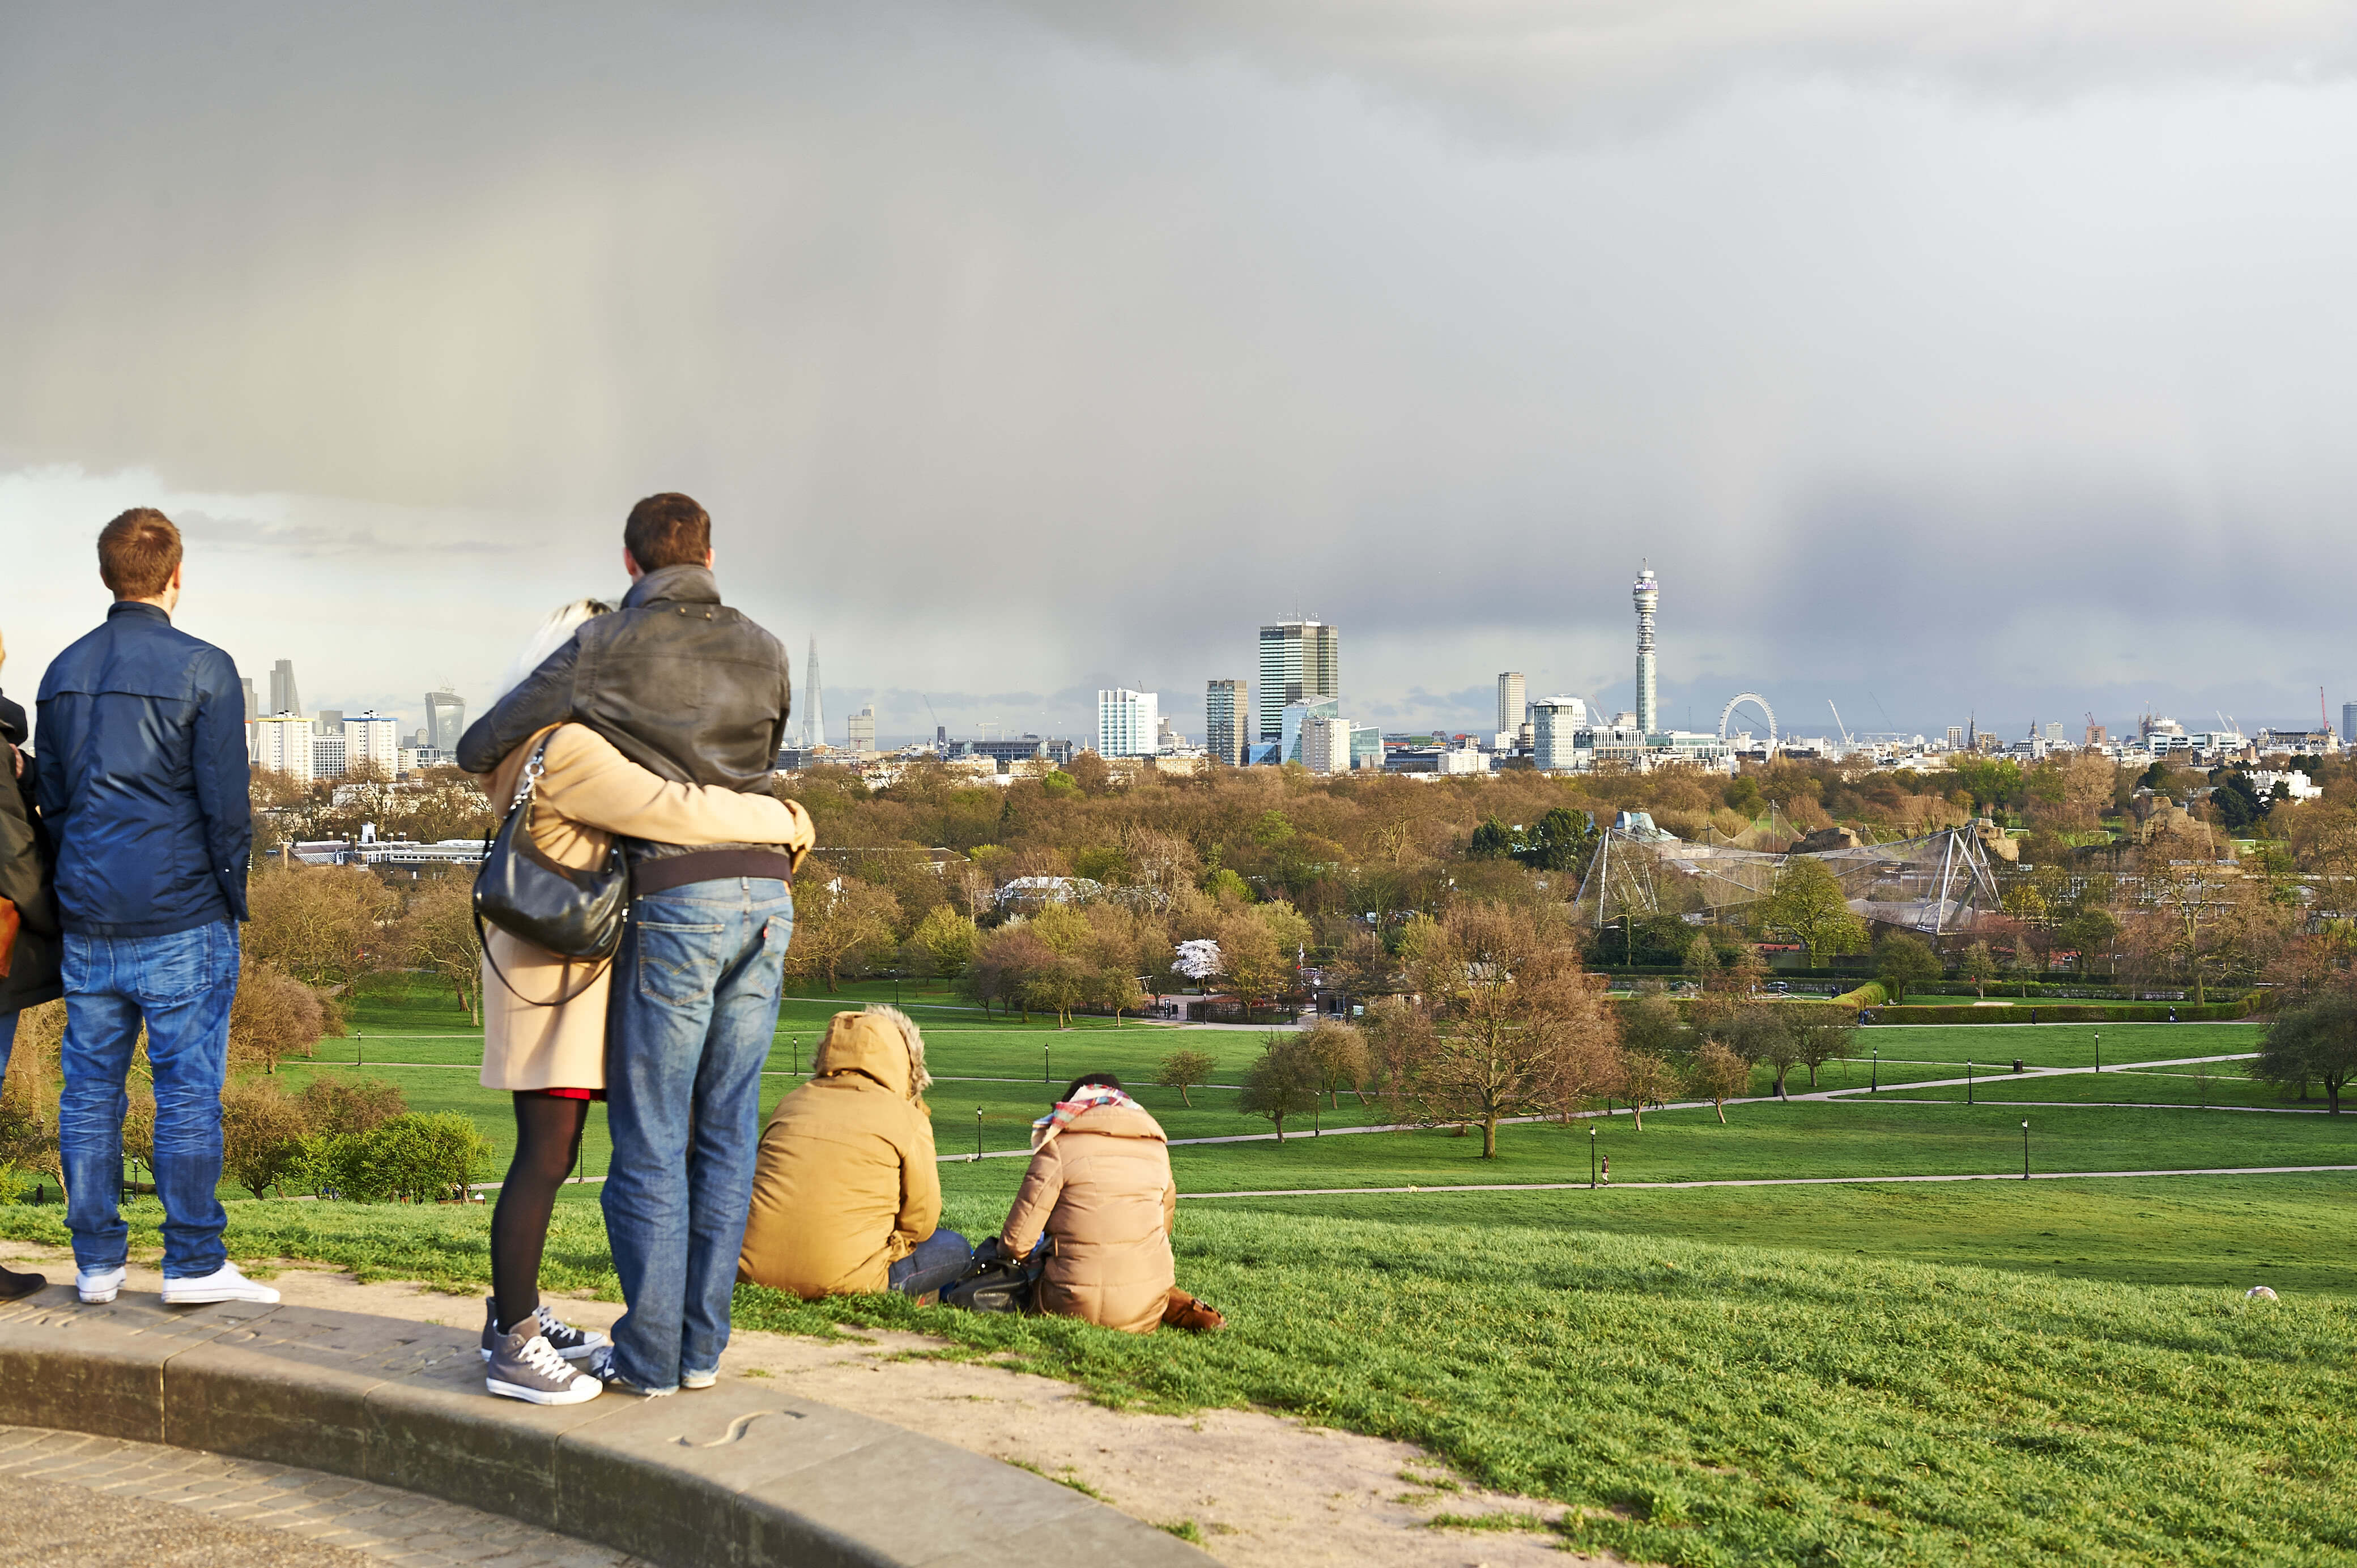 Park Life - View of London SkyLine from Primrose Hill - Greywolf @ The Royal Parks